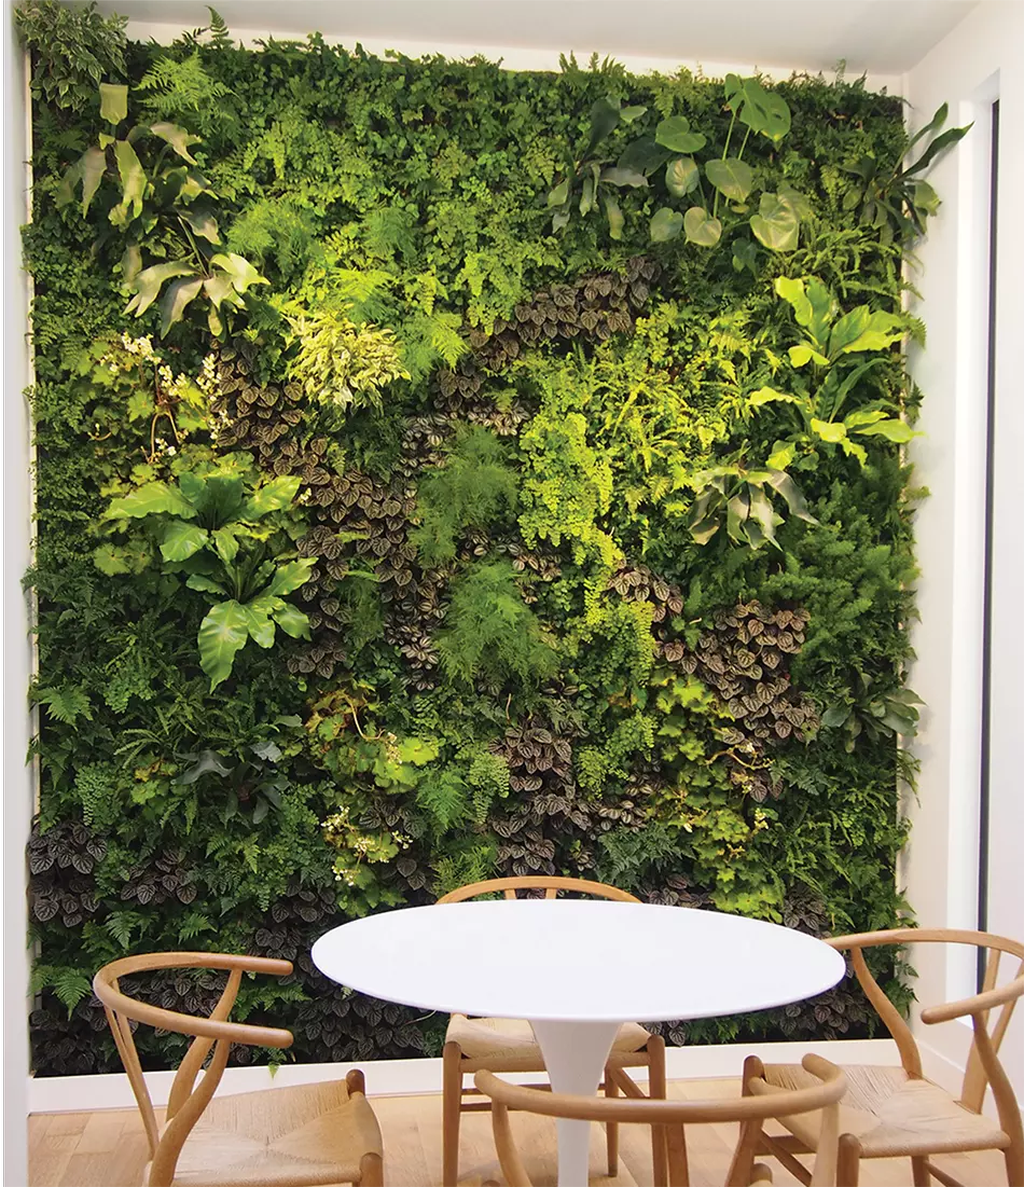 Popular Vertical Garden Wall For Outdoors Decor 02